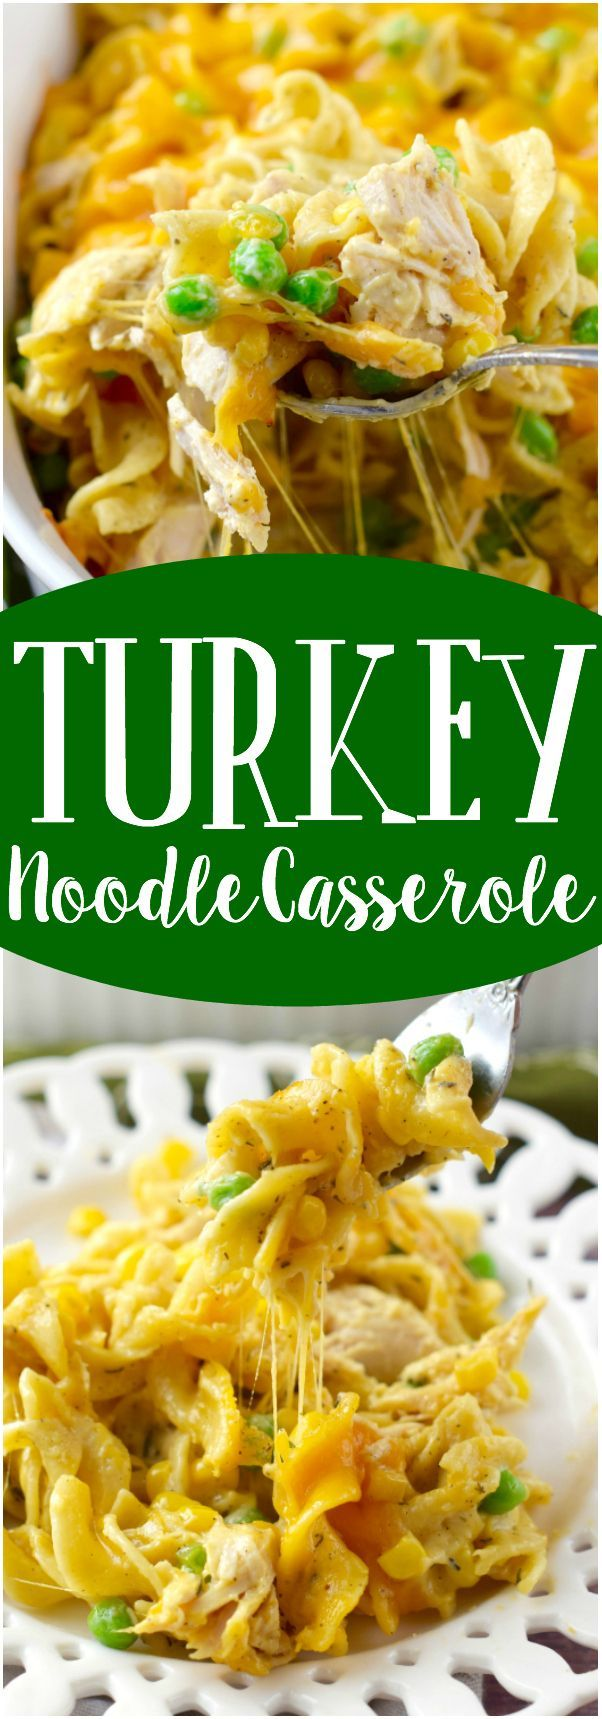 This Turkey Noodle Casserole is ready in under 30 minutes and it is packed full of flavor! The perfect weeknight meal!: